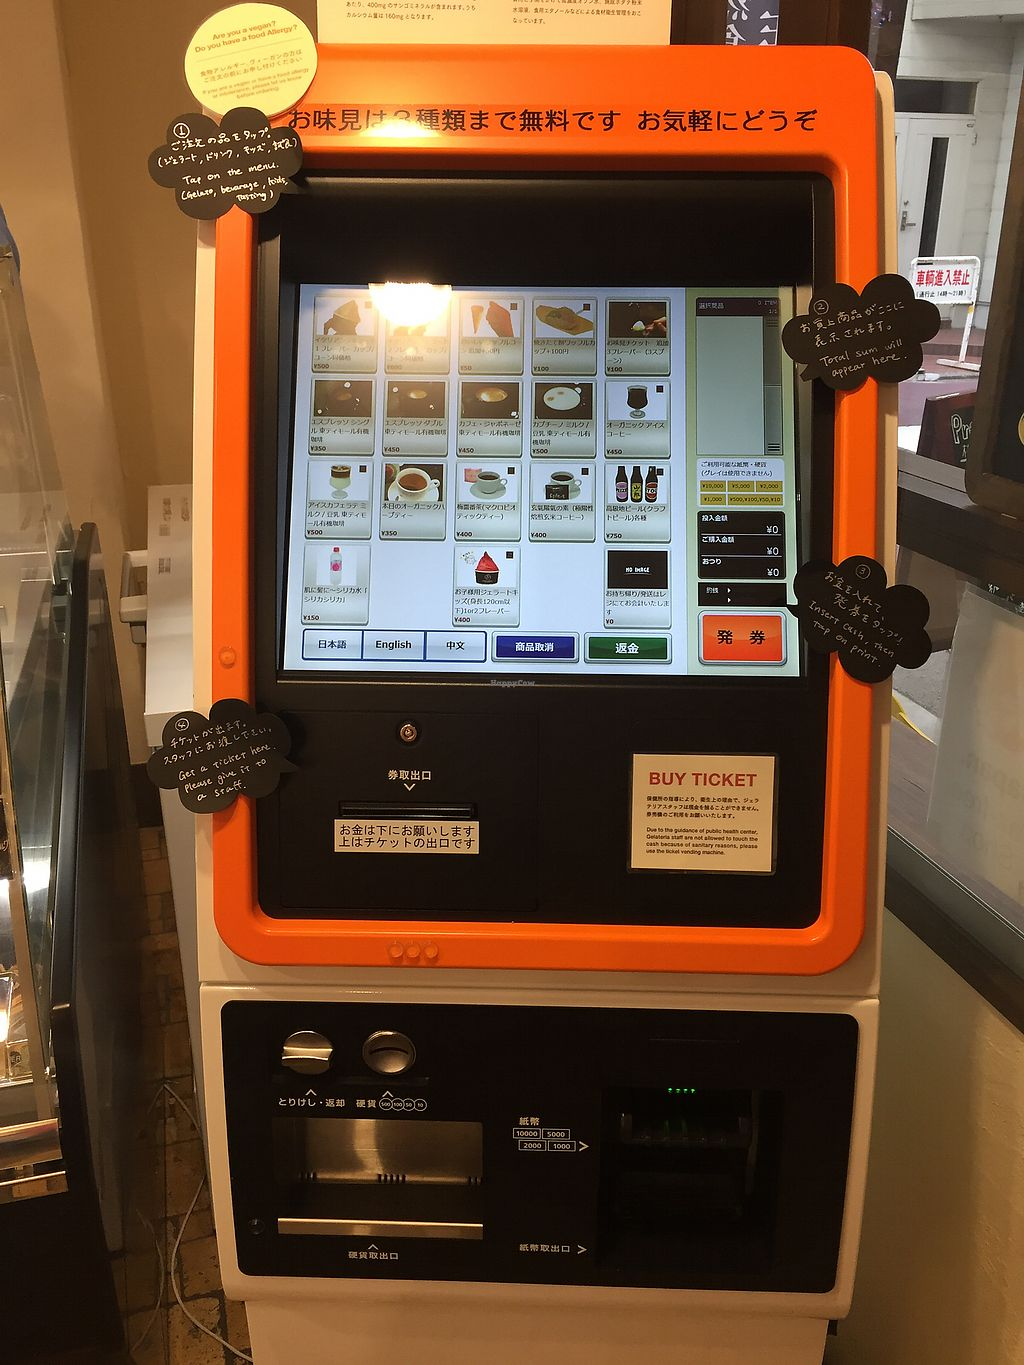 """Photo of Premarche Gelateria  by <a href=""""/members/profile/HaileyPoLa"""">HaileyPoLa</a> <br/>the machine you need to use in order to print a ticket  <br/> August 5, 2017  - <a href='/contact/abuse/image/96348/289268'>Report</a>"""